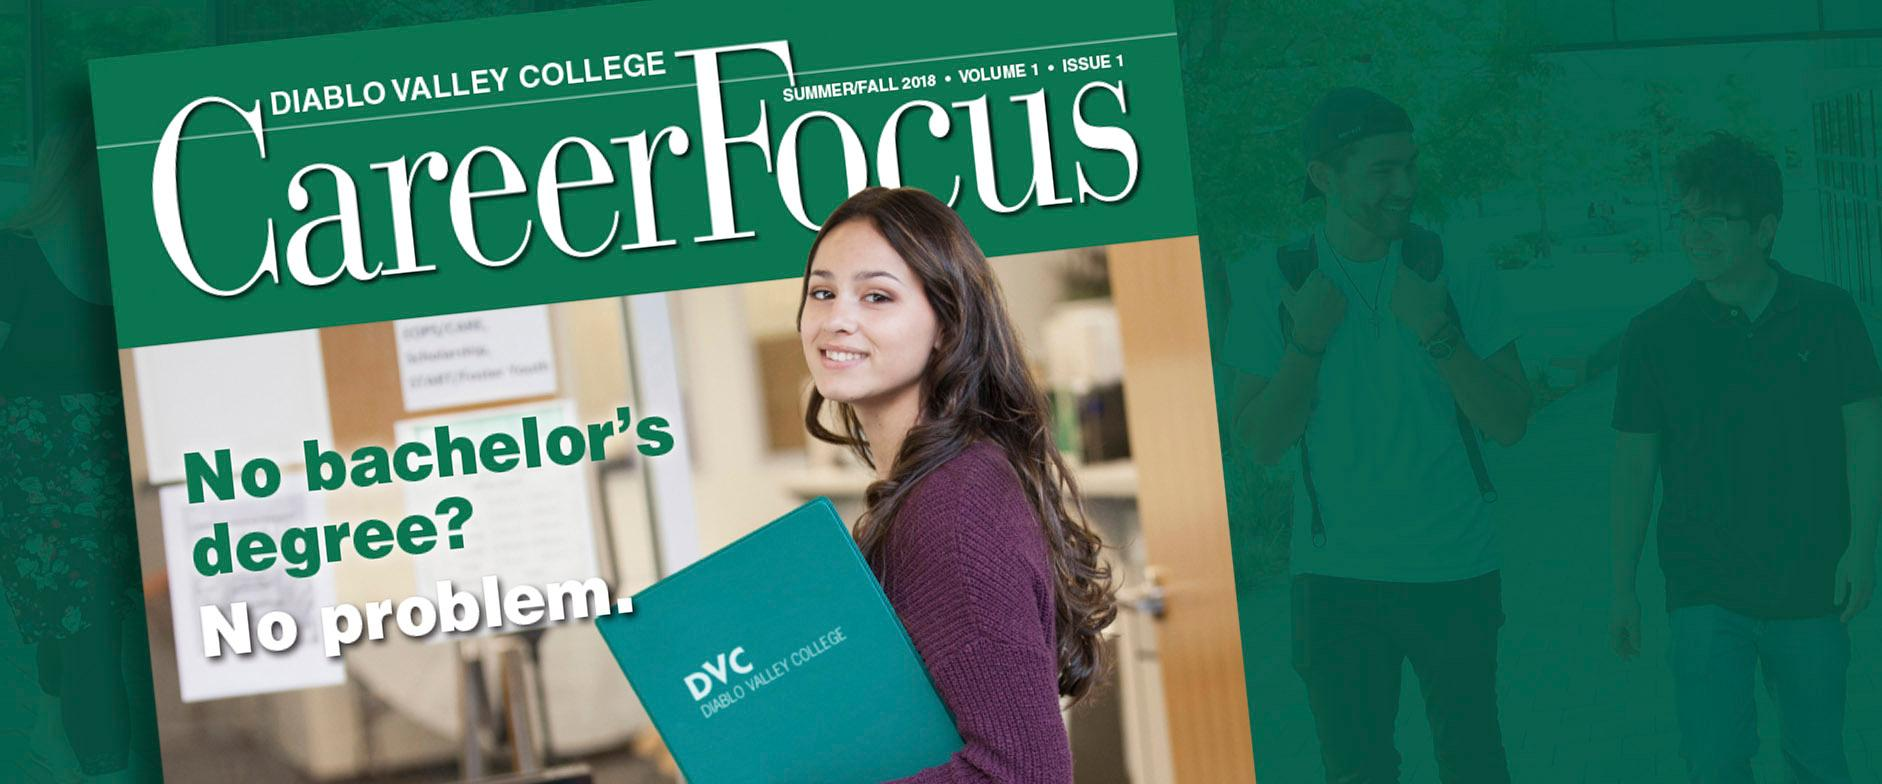 Read about how DVC can launch or grow your career, fast!